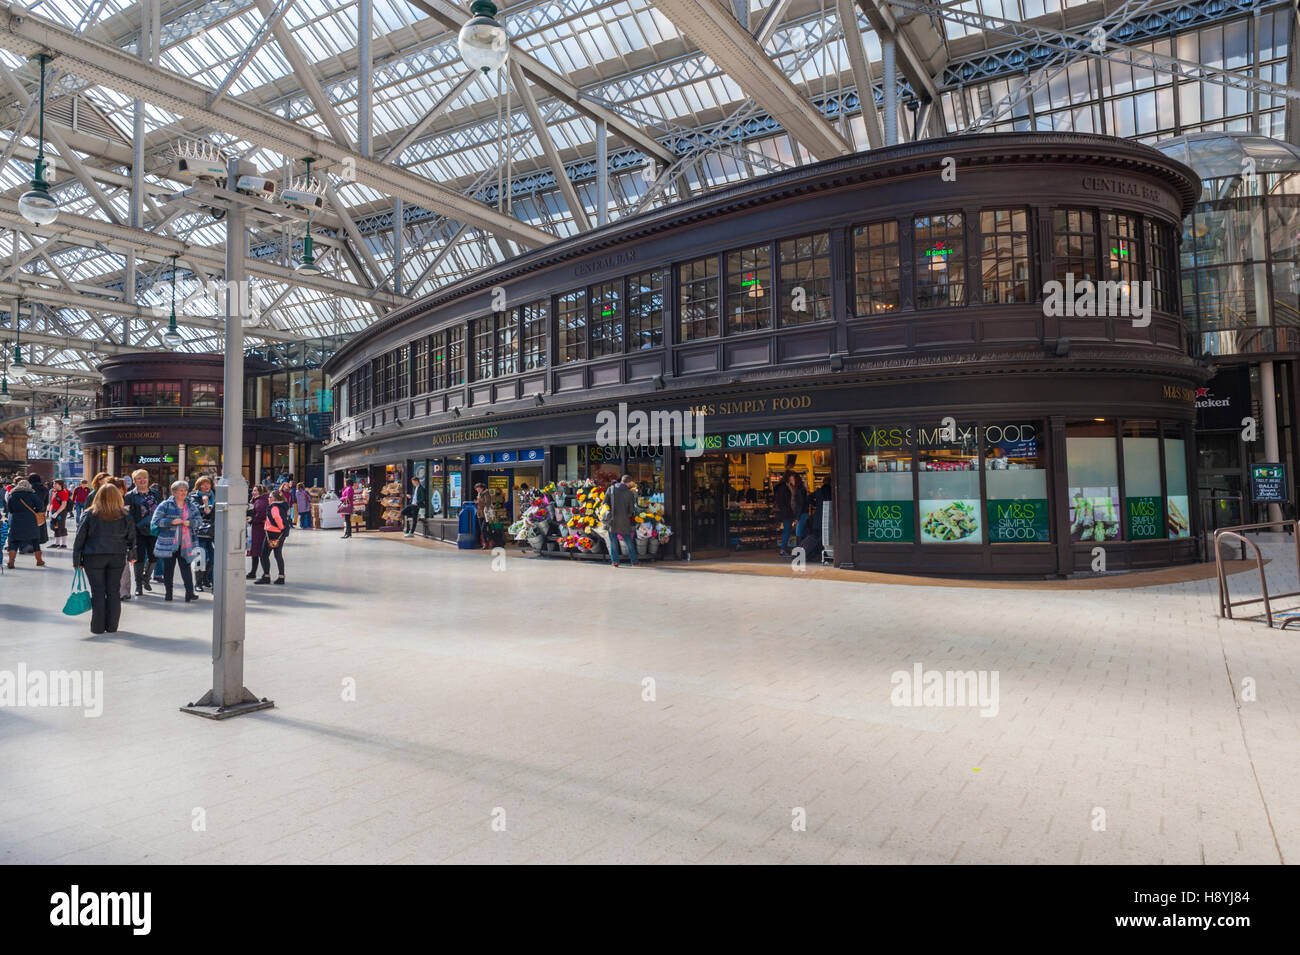 The old information building at Central station scotland. - Stock Image